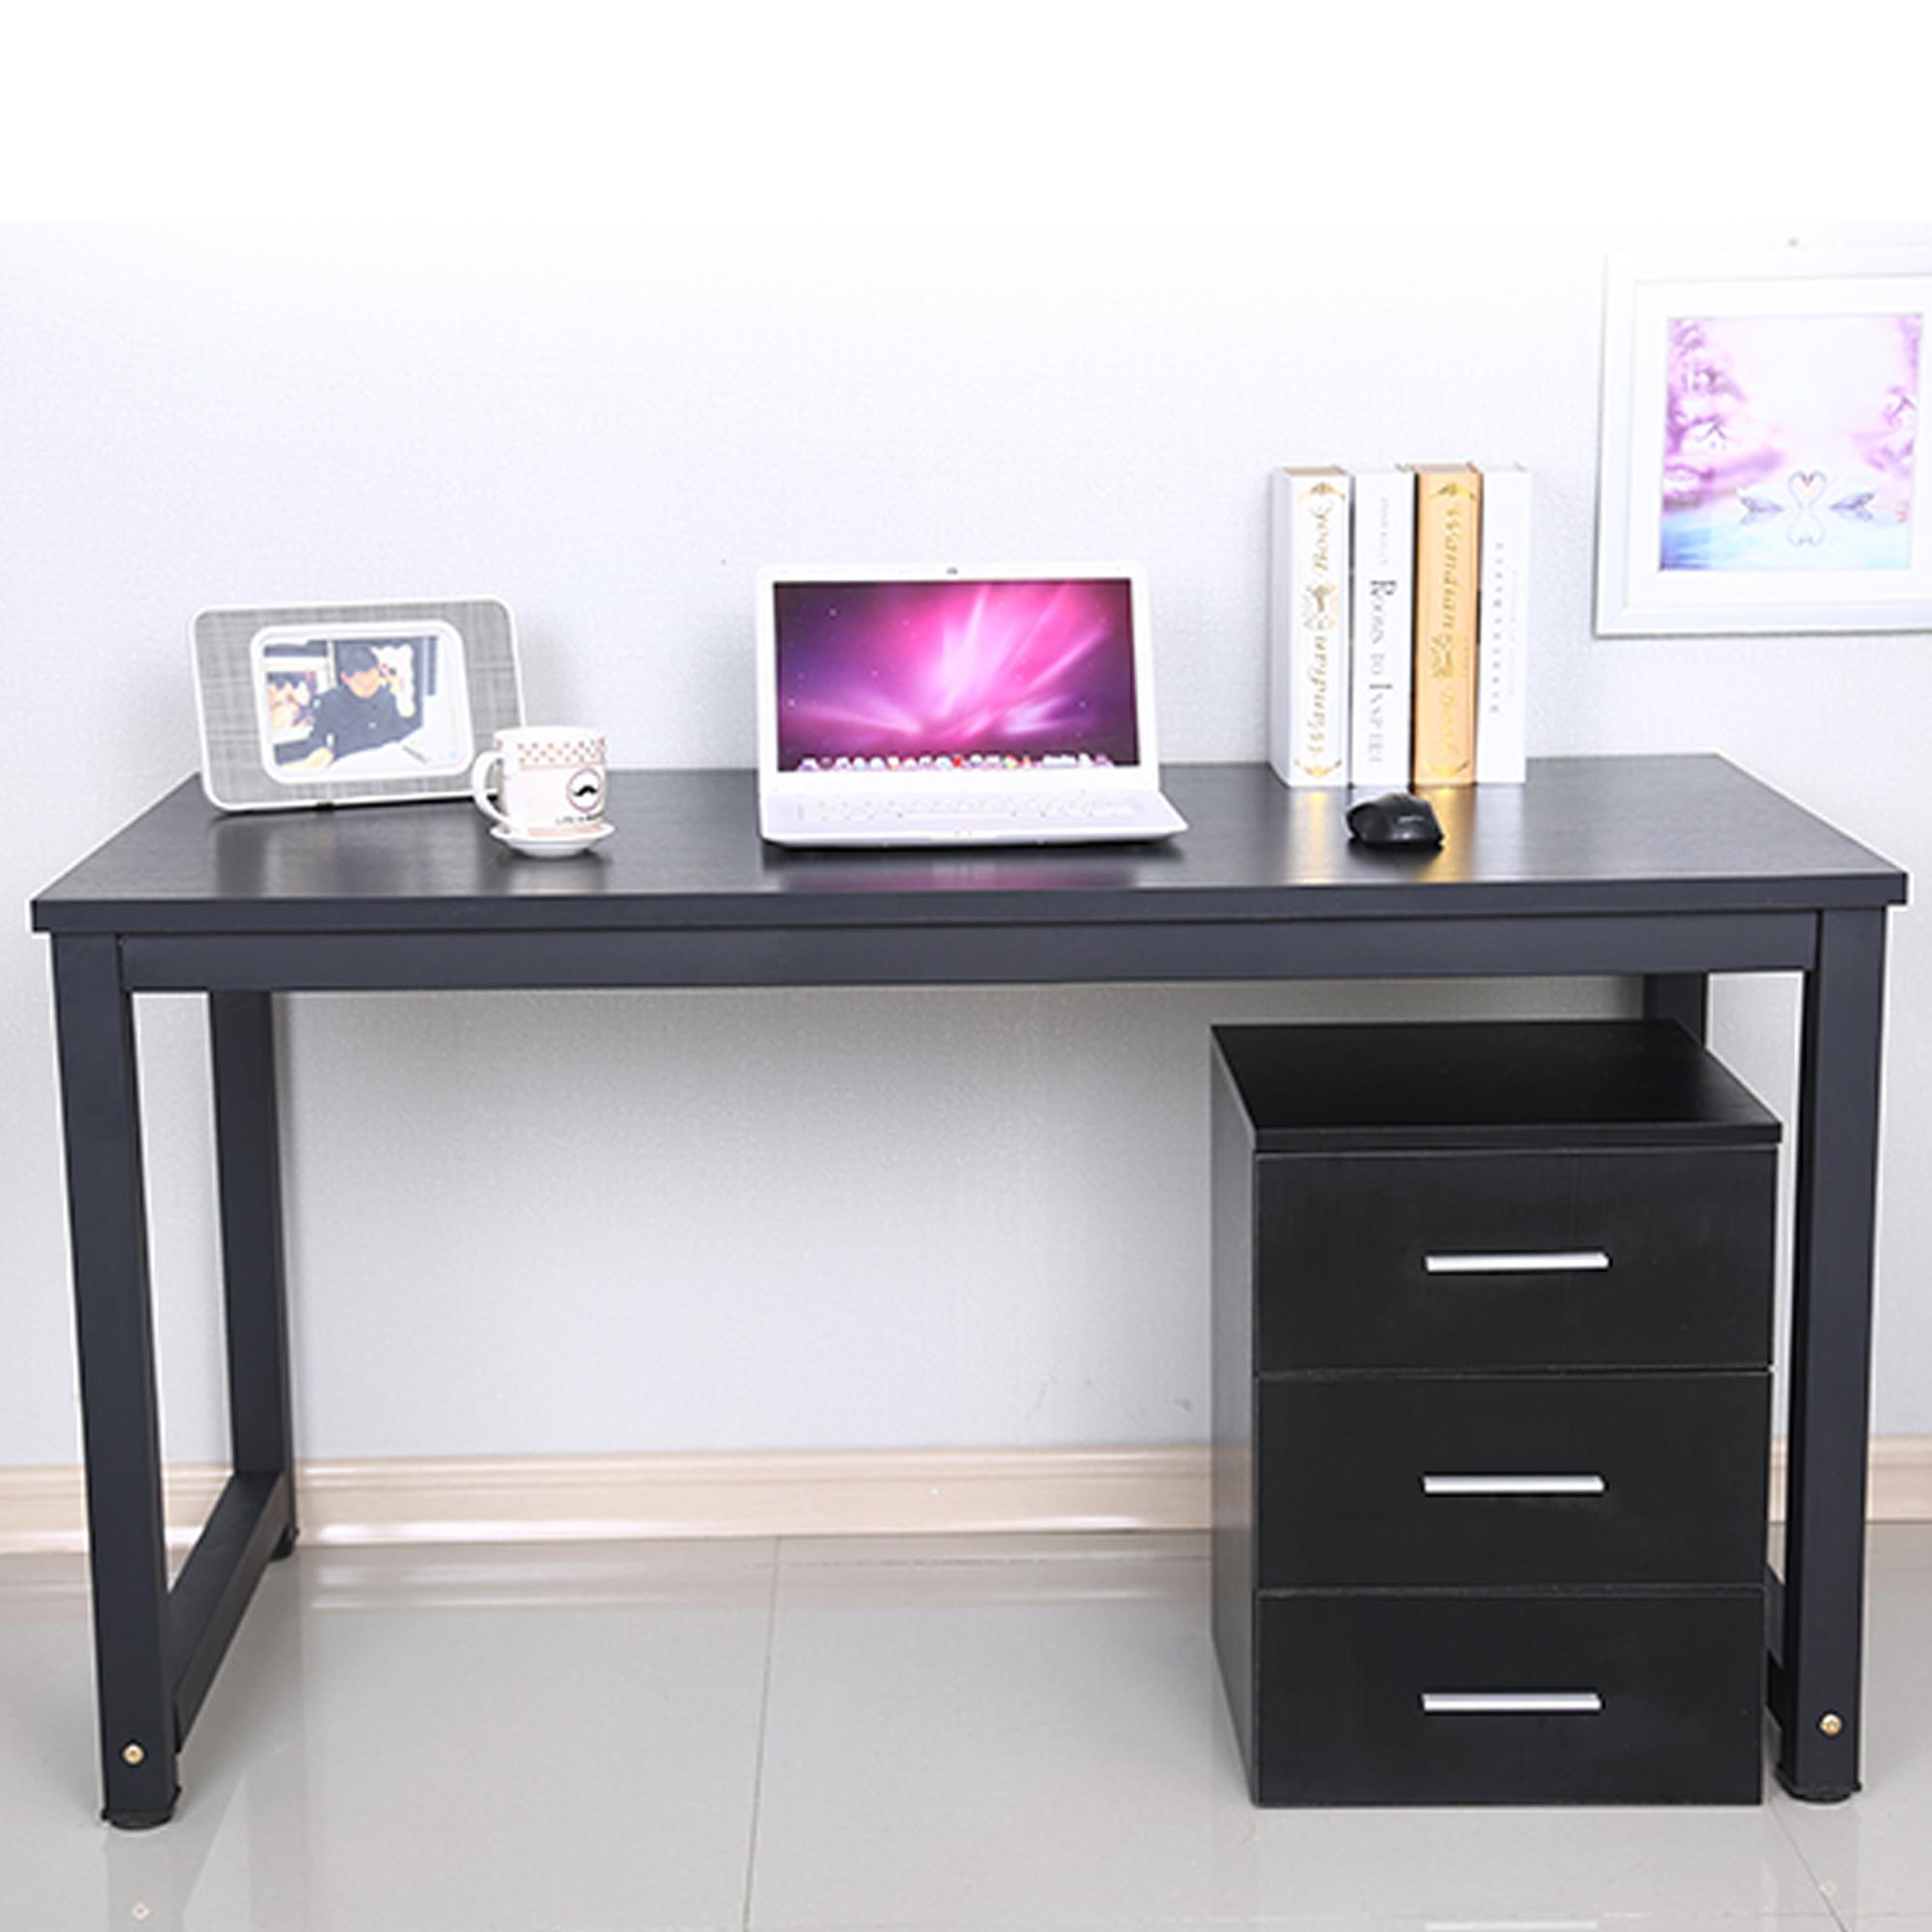 Kruzo Minimalist Home Office Desk Table 120cm X 60cm 74cm 2ft 8in